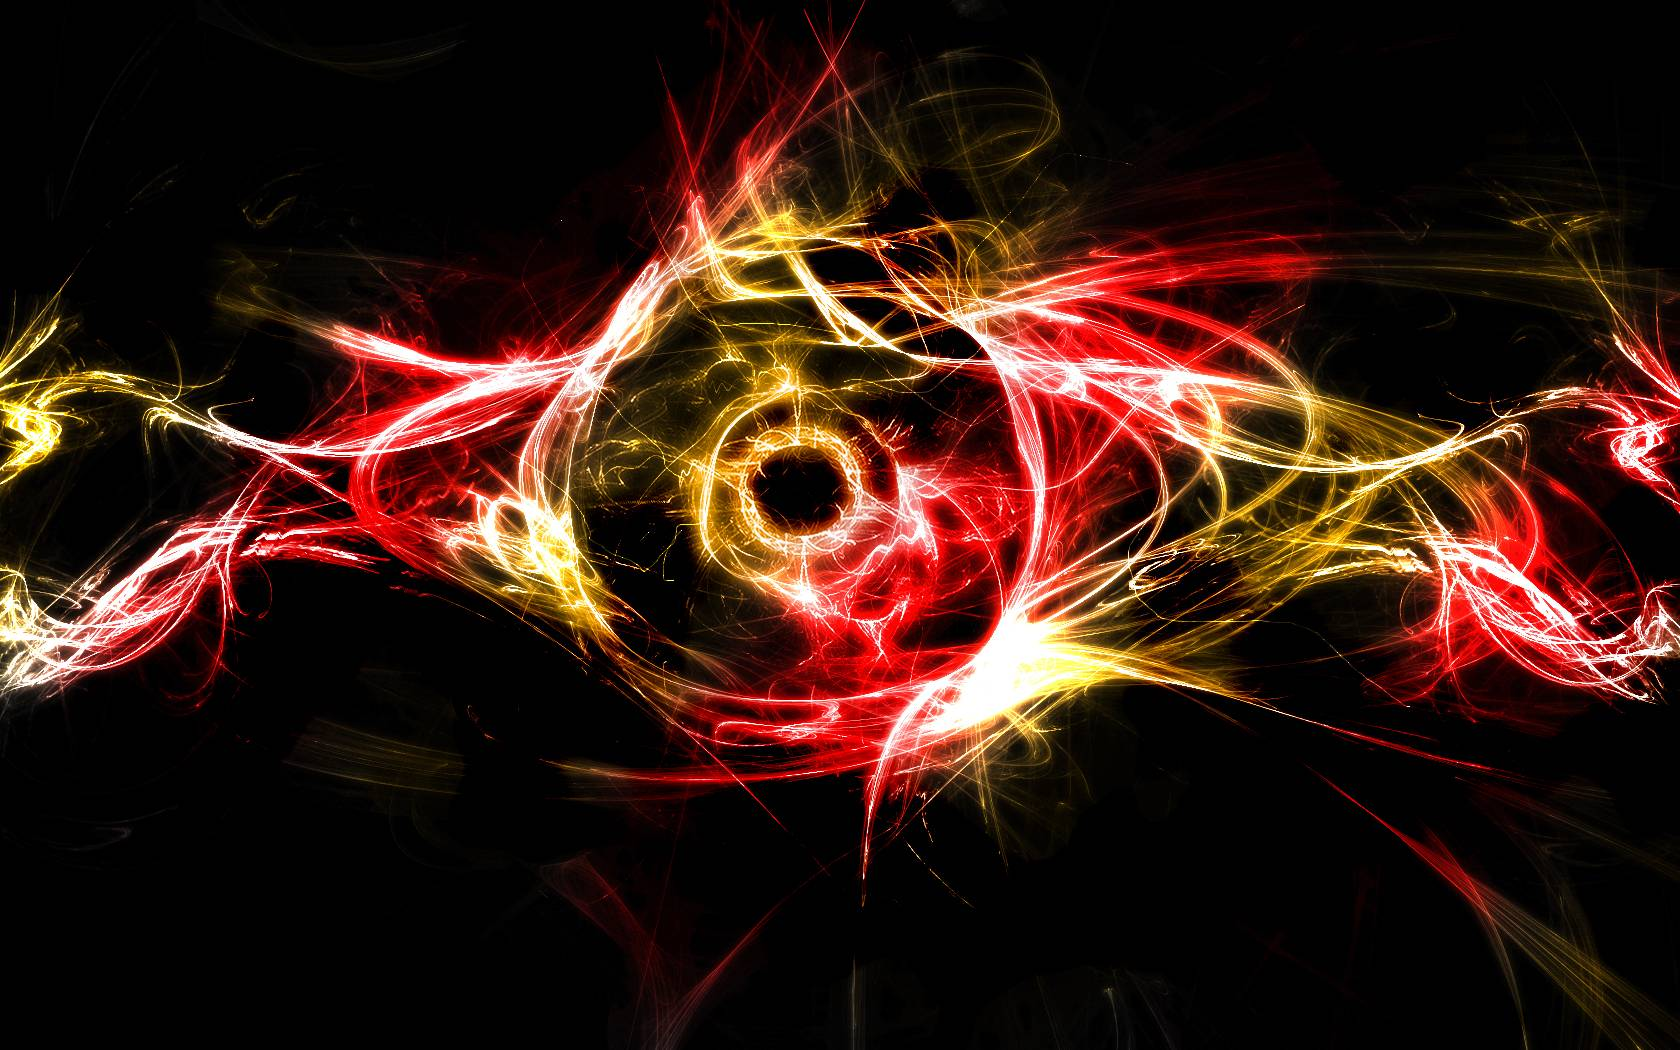 abstract desktop backgrounds 2 HD Wallpapers